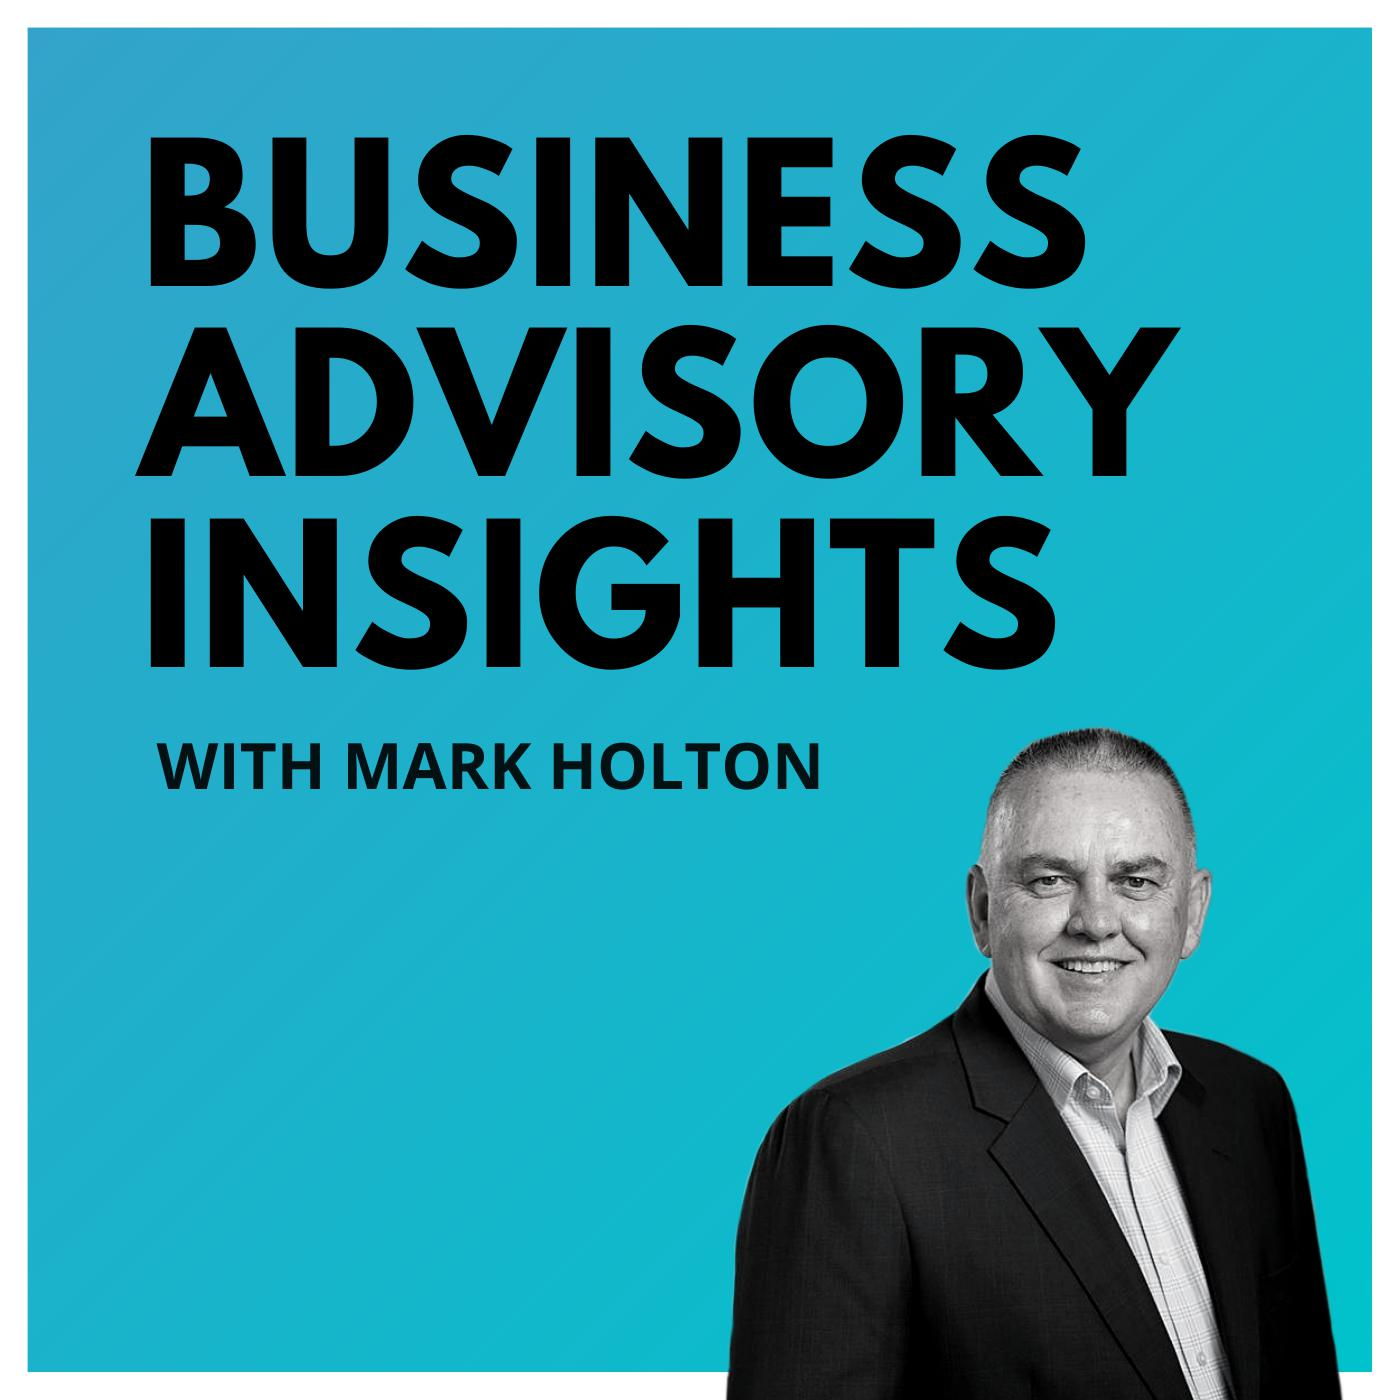 Business Advisory Insights With Mark Holton Podcast Mark Holton Listen Notes Get all the details on mark holton, watch interviews and videos, and see what else bing knows. listen notes